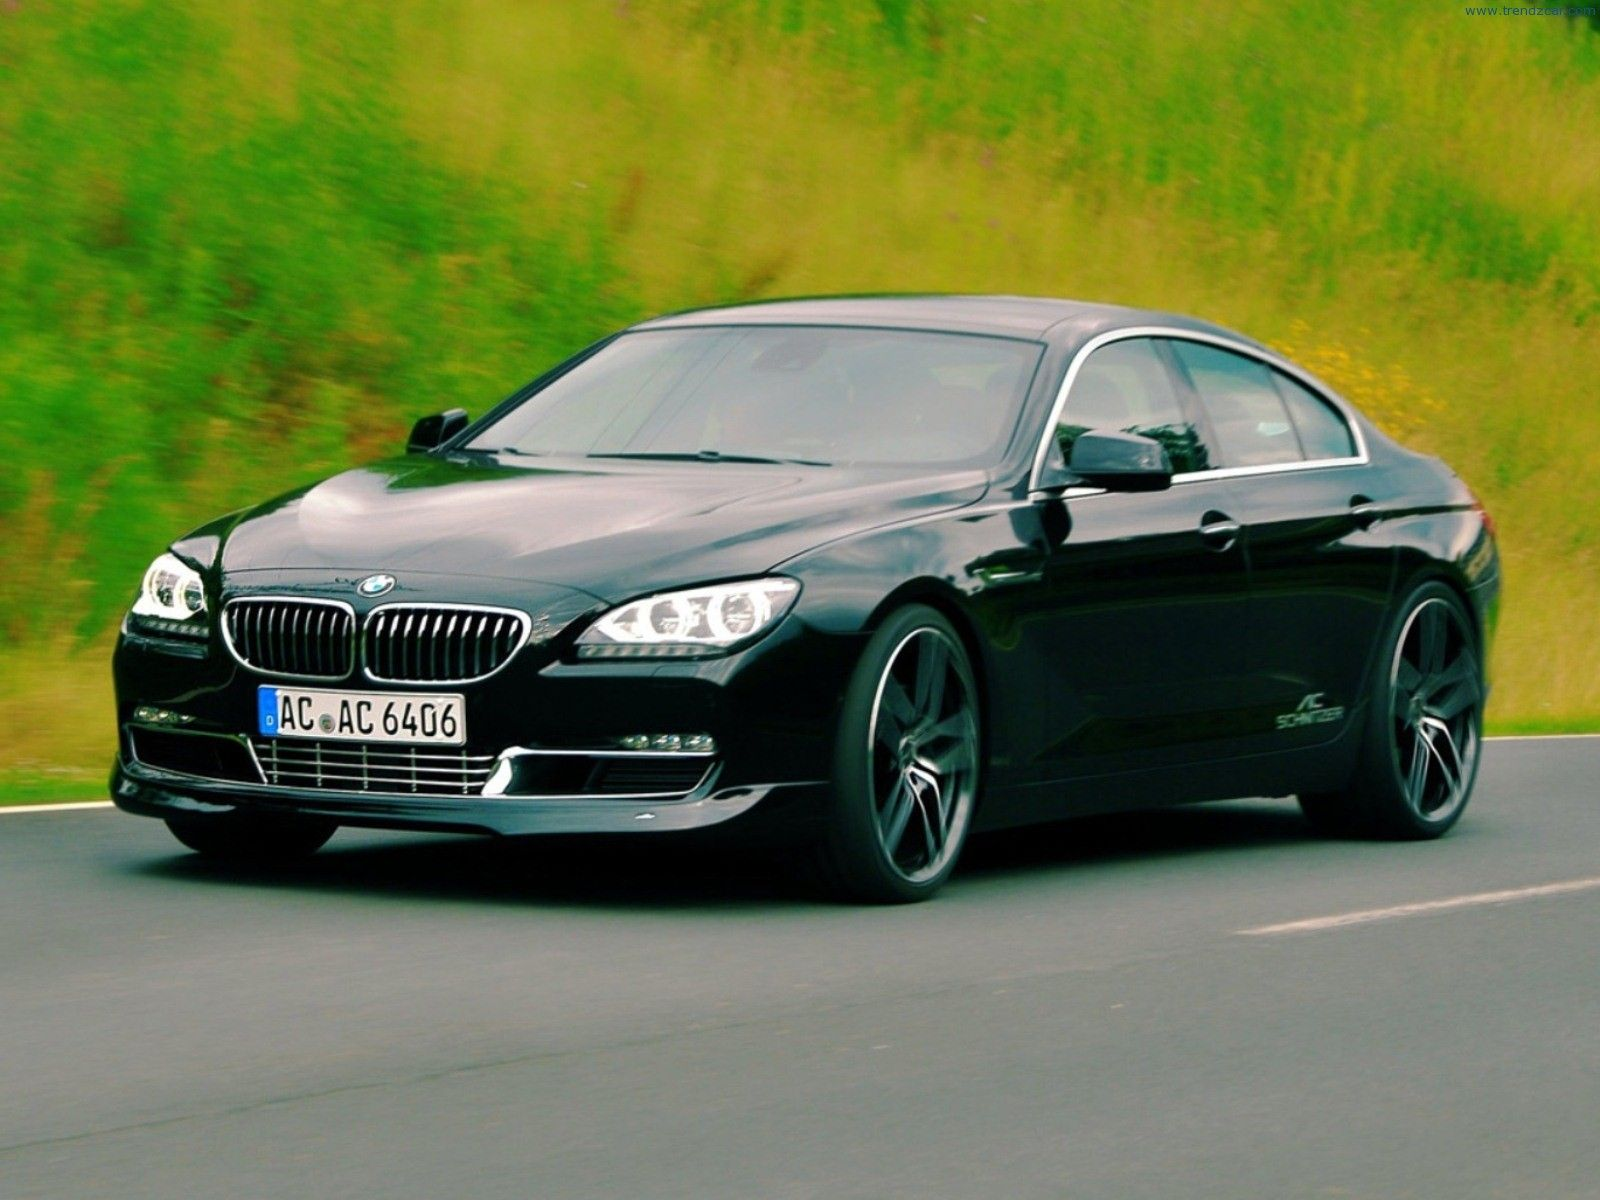 2012 bmw 6 series 650i coupe black sapphire metallic color black - Ac Schnitzer Officially Introduced Their Latest Tuning Program For Bmw Gran Coupe And Of Course Presented In Black Exterior Color That Characterized This